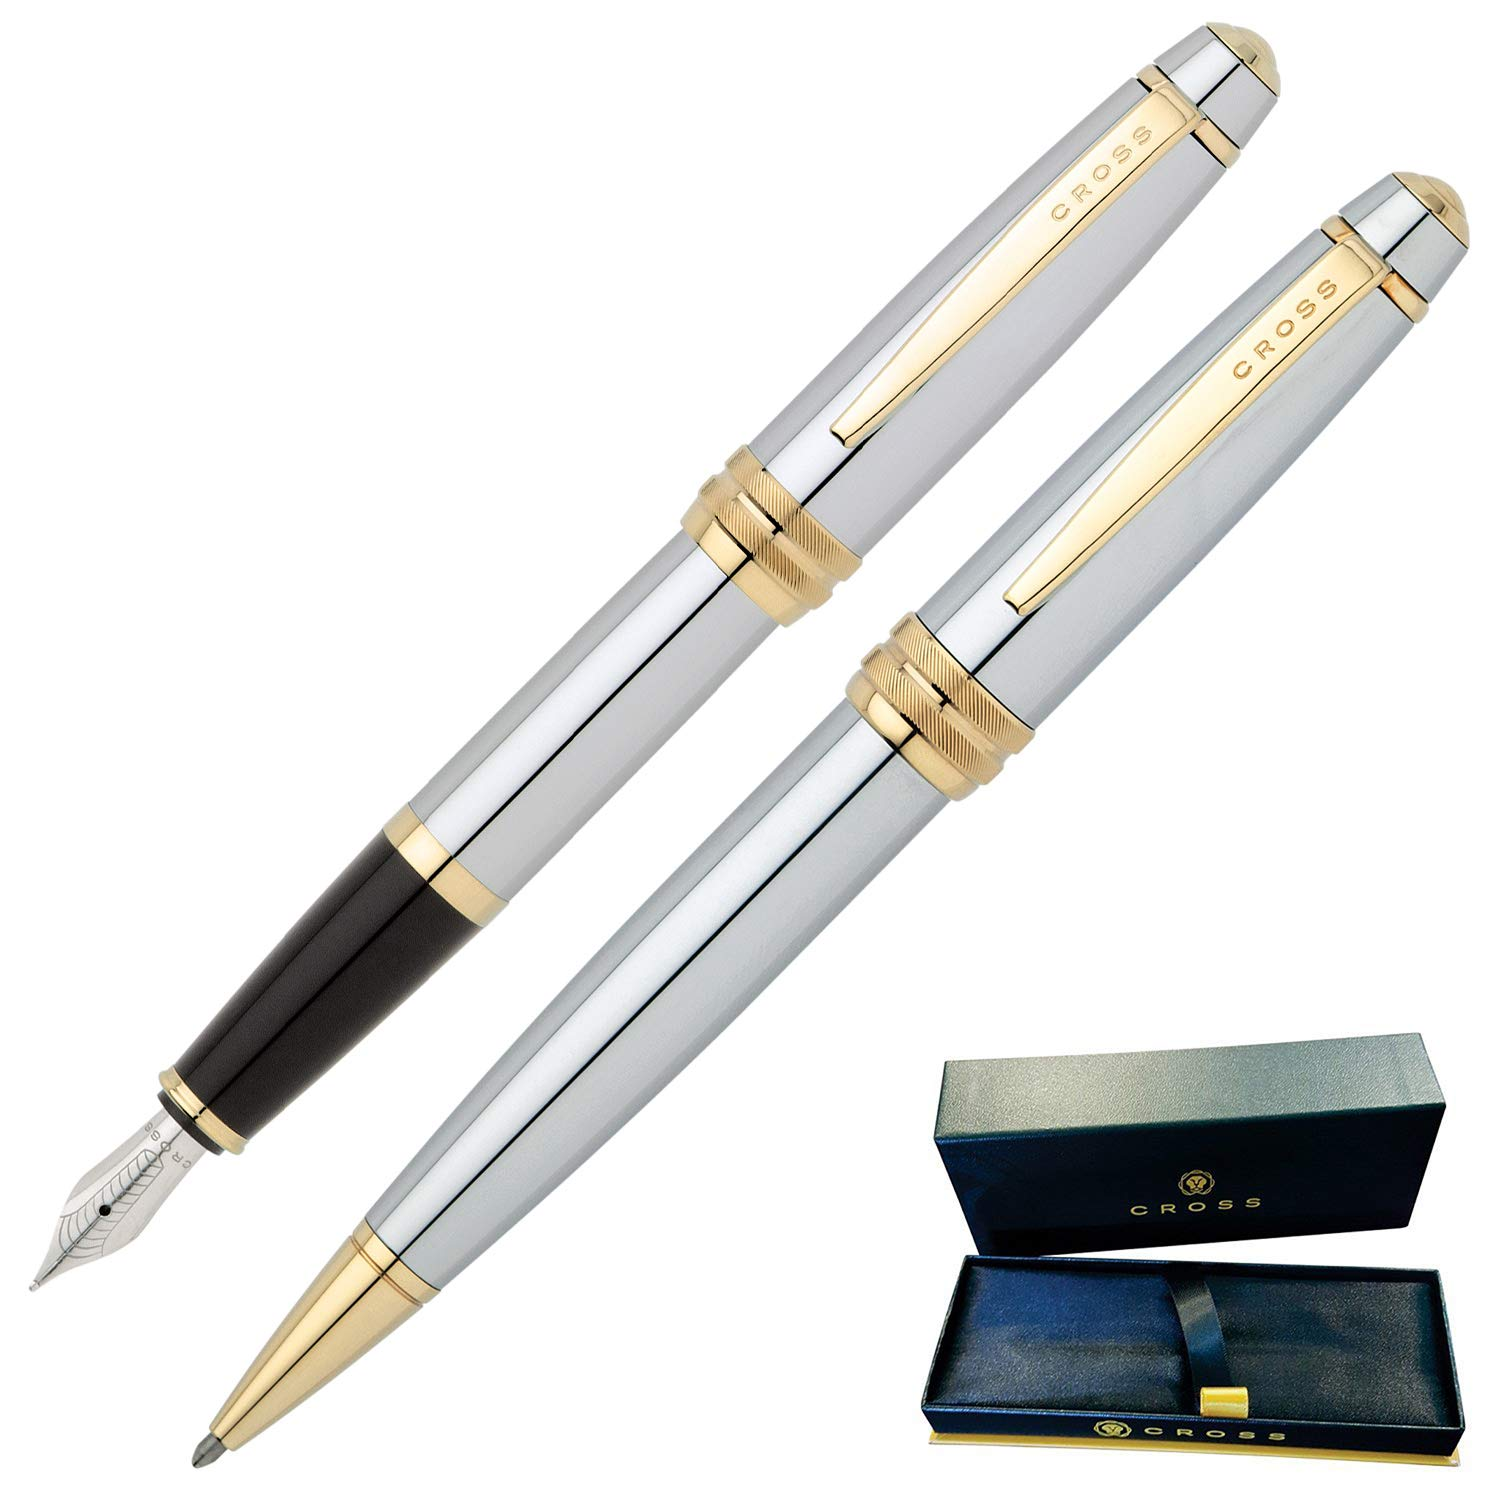 Dayspring Pens | Engraved/Personalized Cross Bailey Medalist Ballpoint and Fountain Gift Pen Set. Custom Engraved Case Included by Dayspring Pens (Image #4)